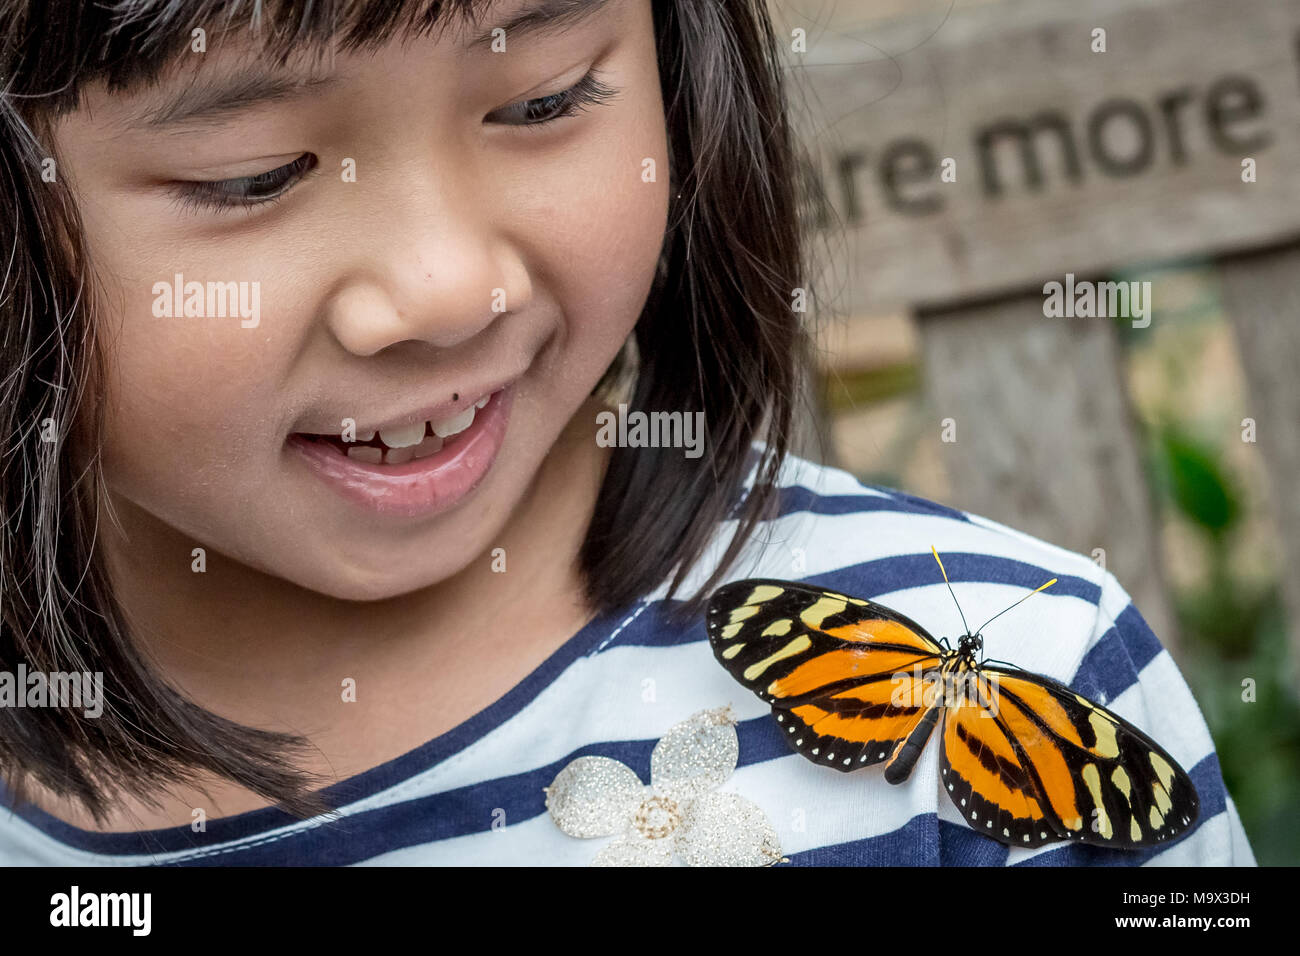 London, UK. 28th March, 2018. Live tropical butterflies fill the butterfly house for the returning 'Sensational Butterflies' exhibition at the Natural History Museum © Guy Corbishley/Alamy Live News - Stock Image